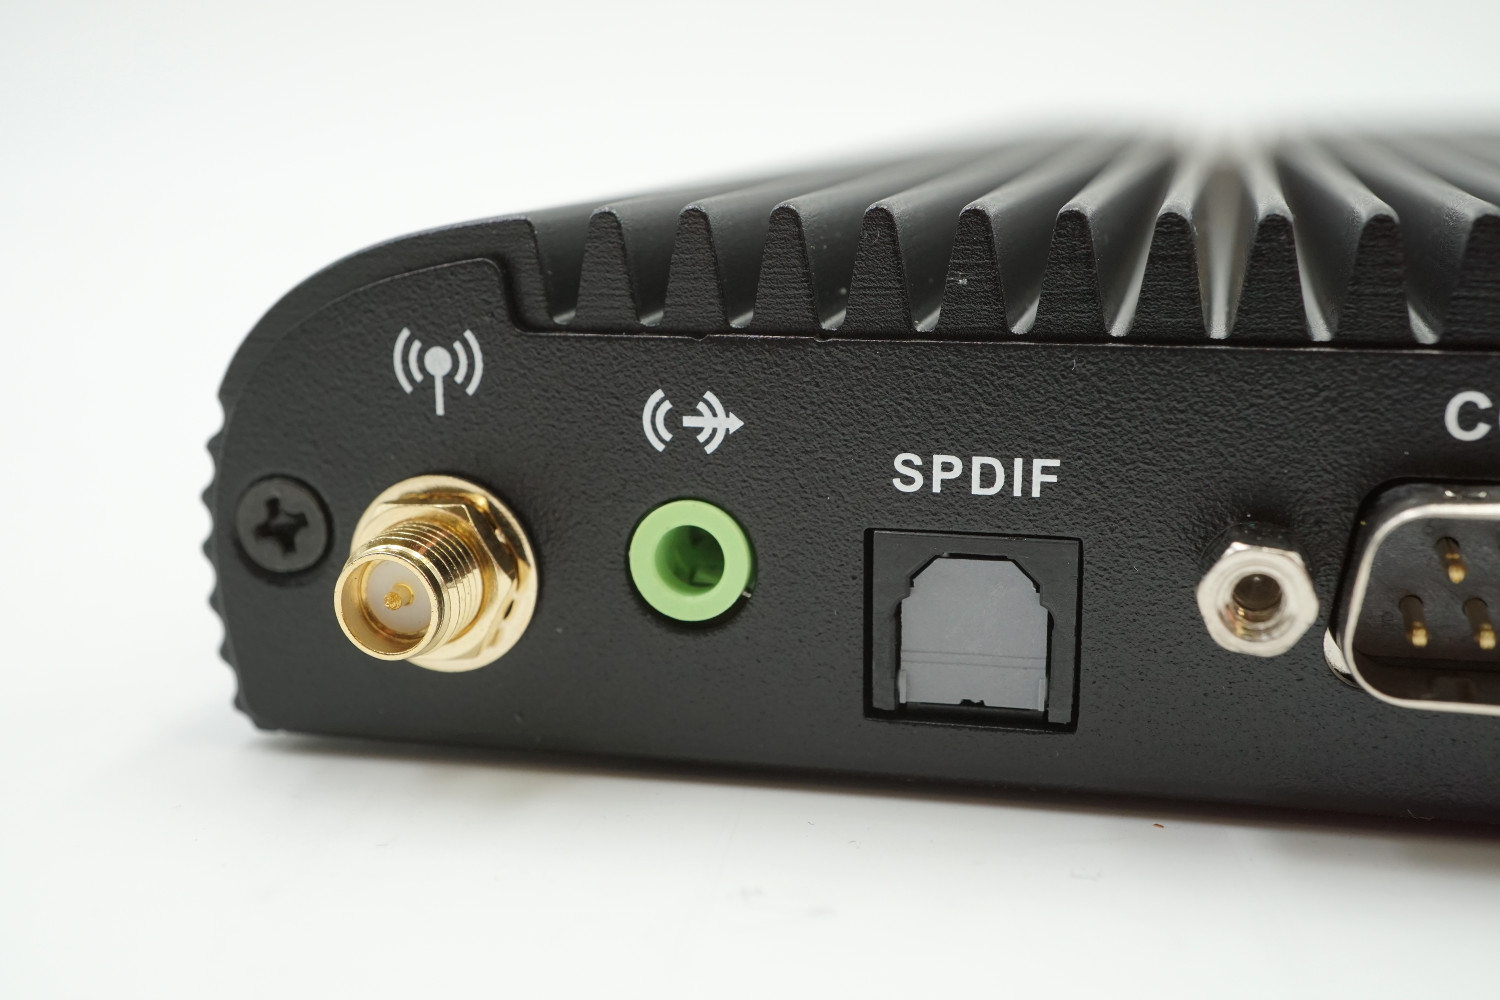 What is SPDIF?